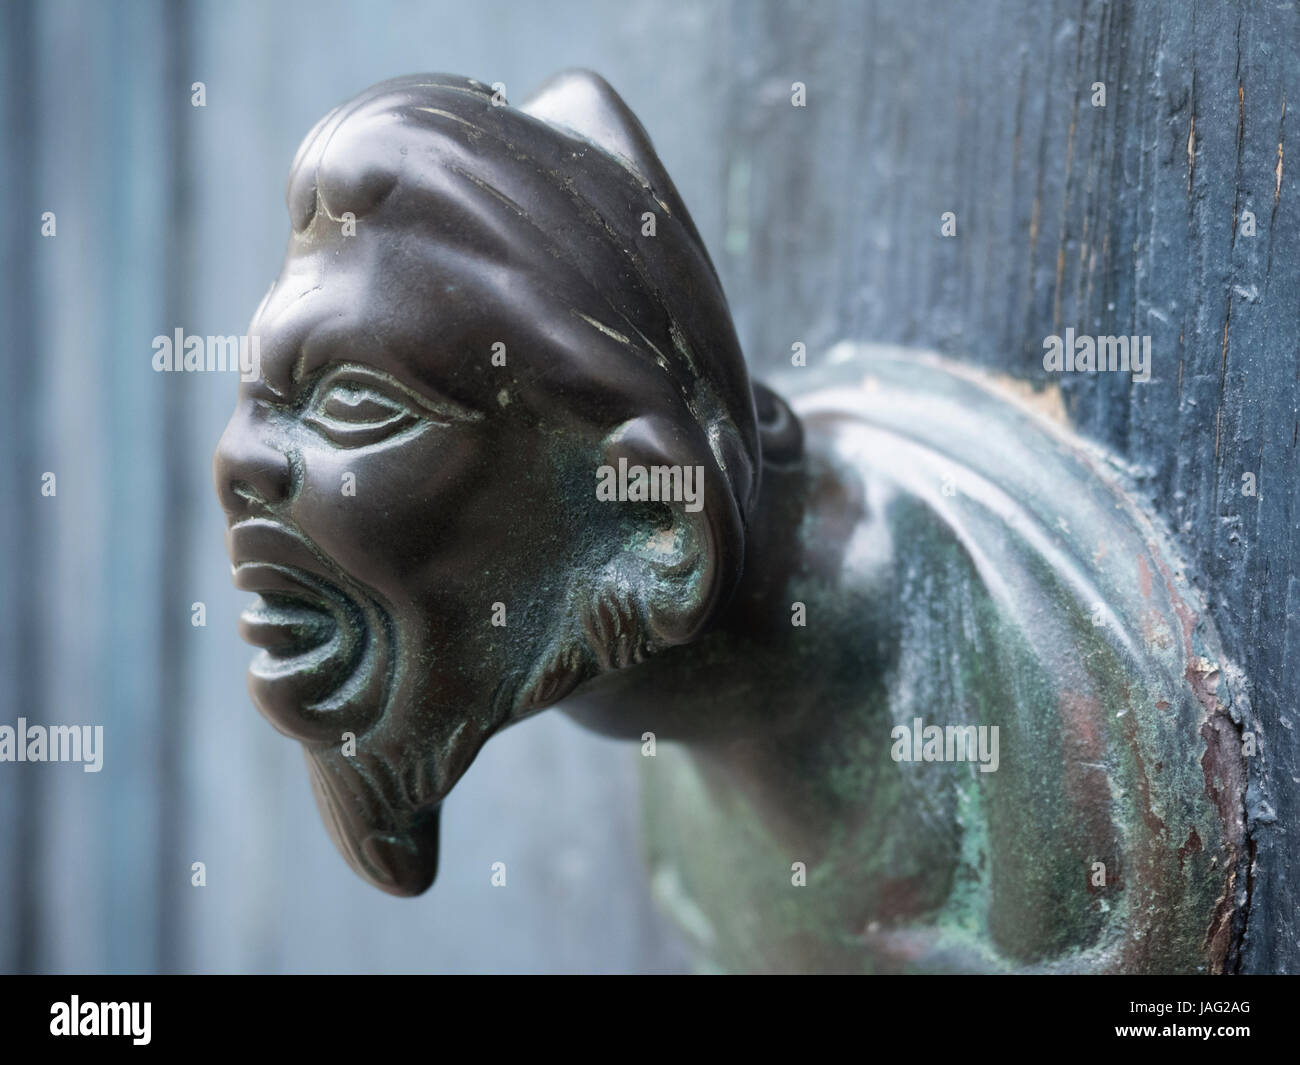 Venice. A metal handle or knocker, a human or goblin head grimacing with an open mouth. - Stock Image